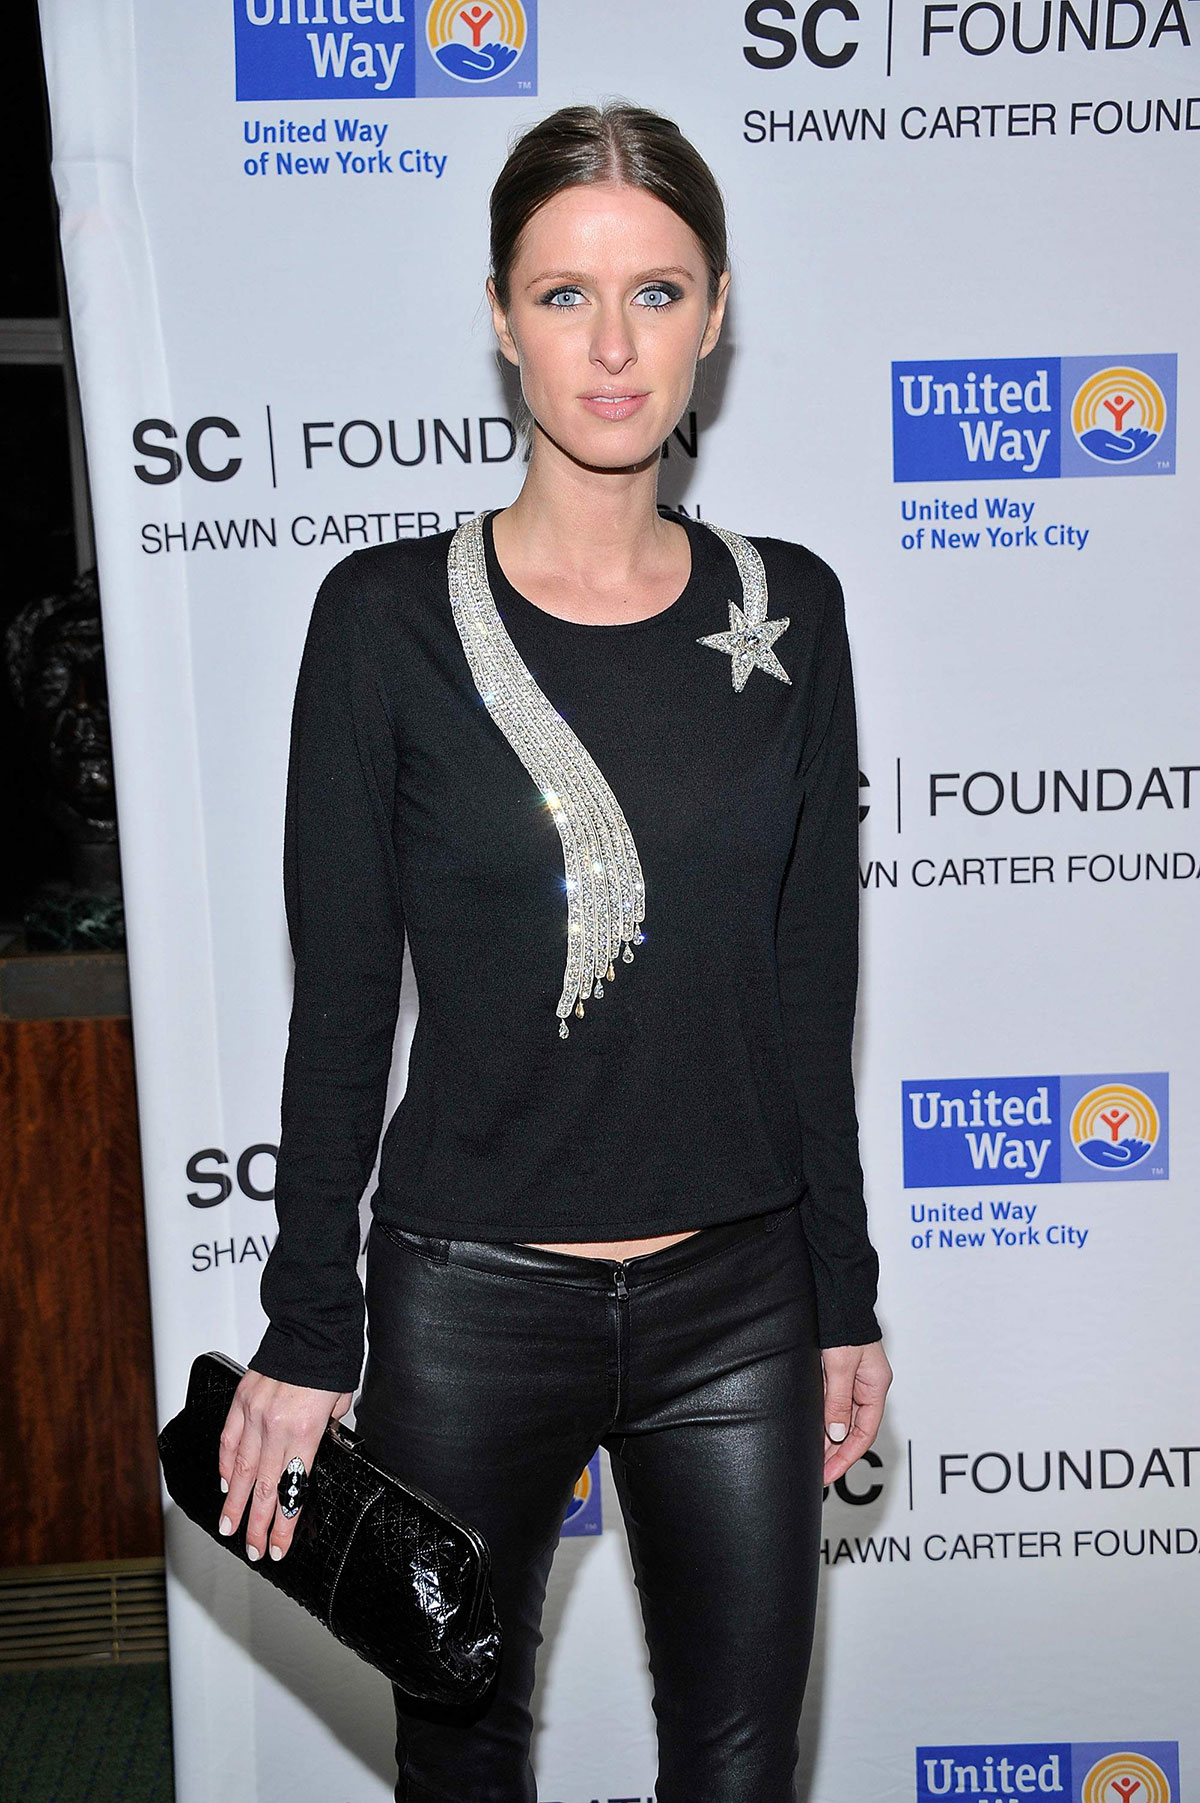 Nicky Hilton attends United Way of New York City and the Shawn Carter Foundation